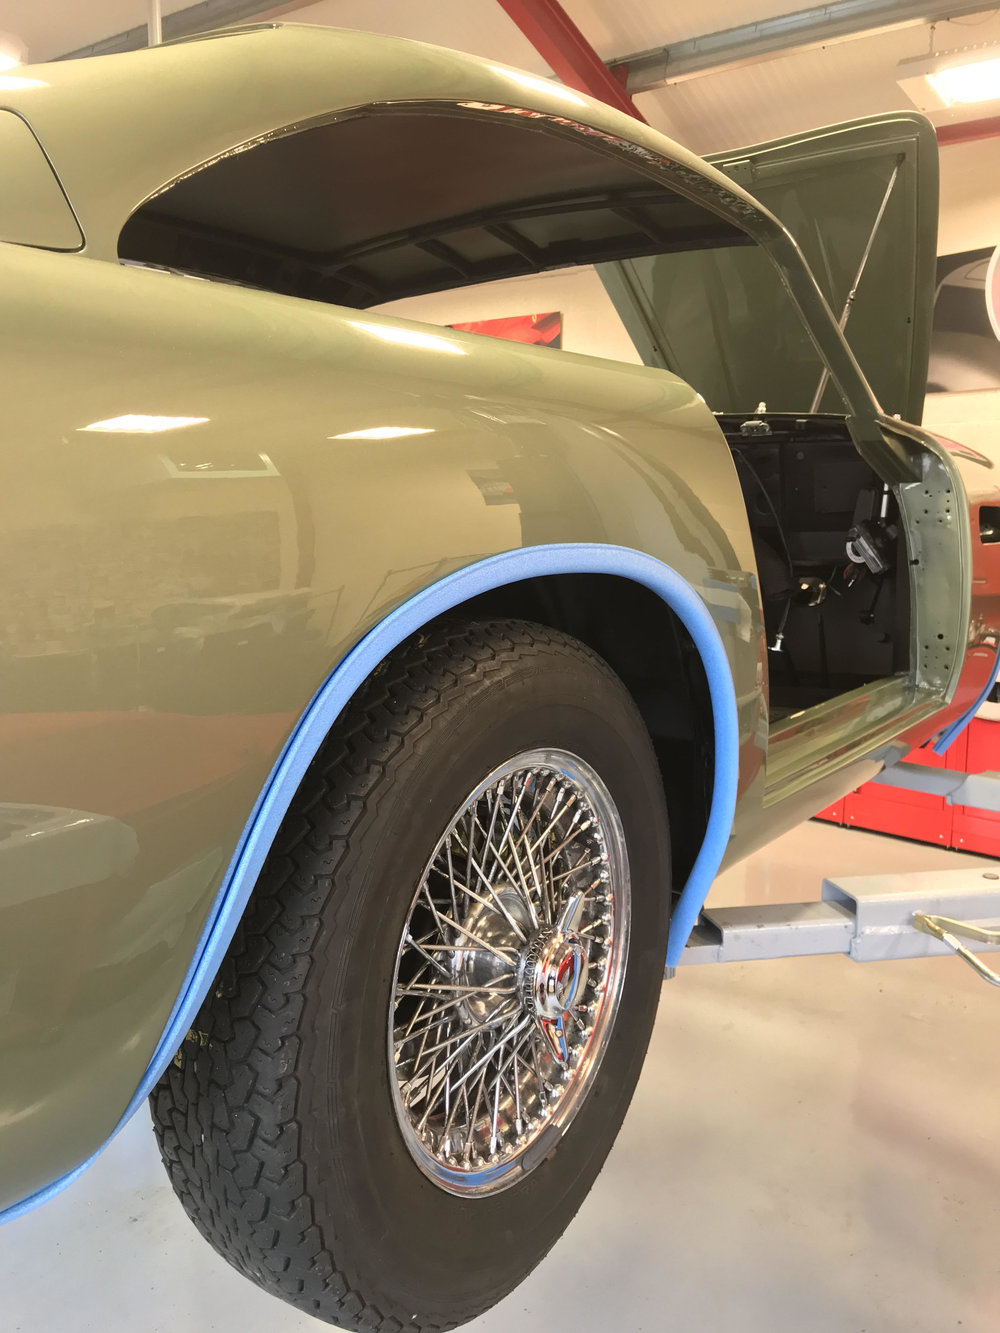 With all the suspension, brake pipes and numerous other items in place our Aston Martin DB5 is coming along nicely. With a wonderful paint job it certainly stands out in a workshop full of Ferraris.